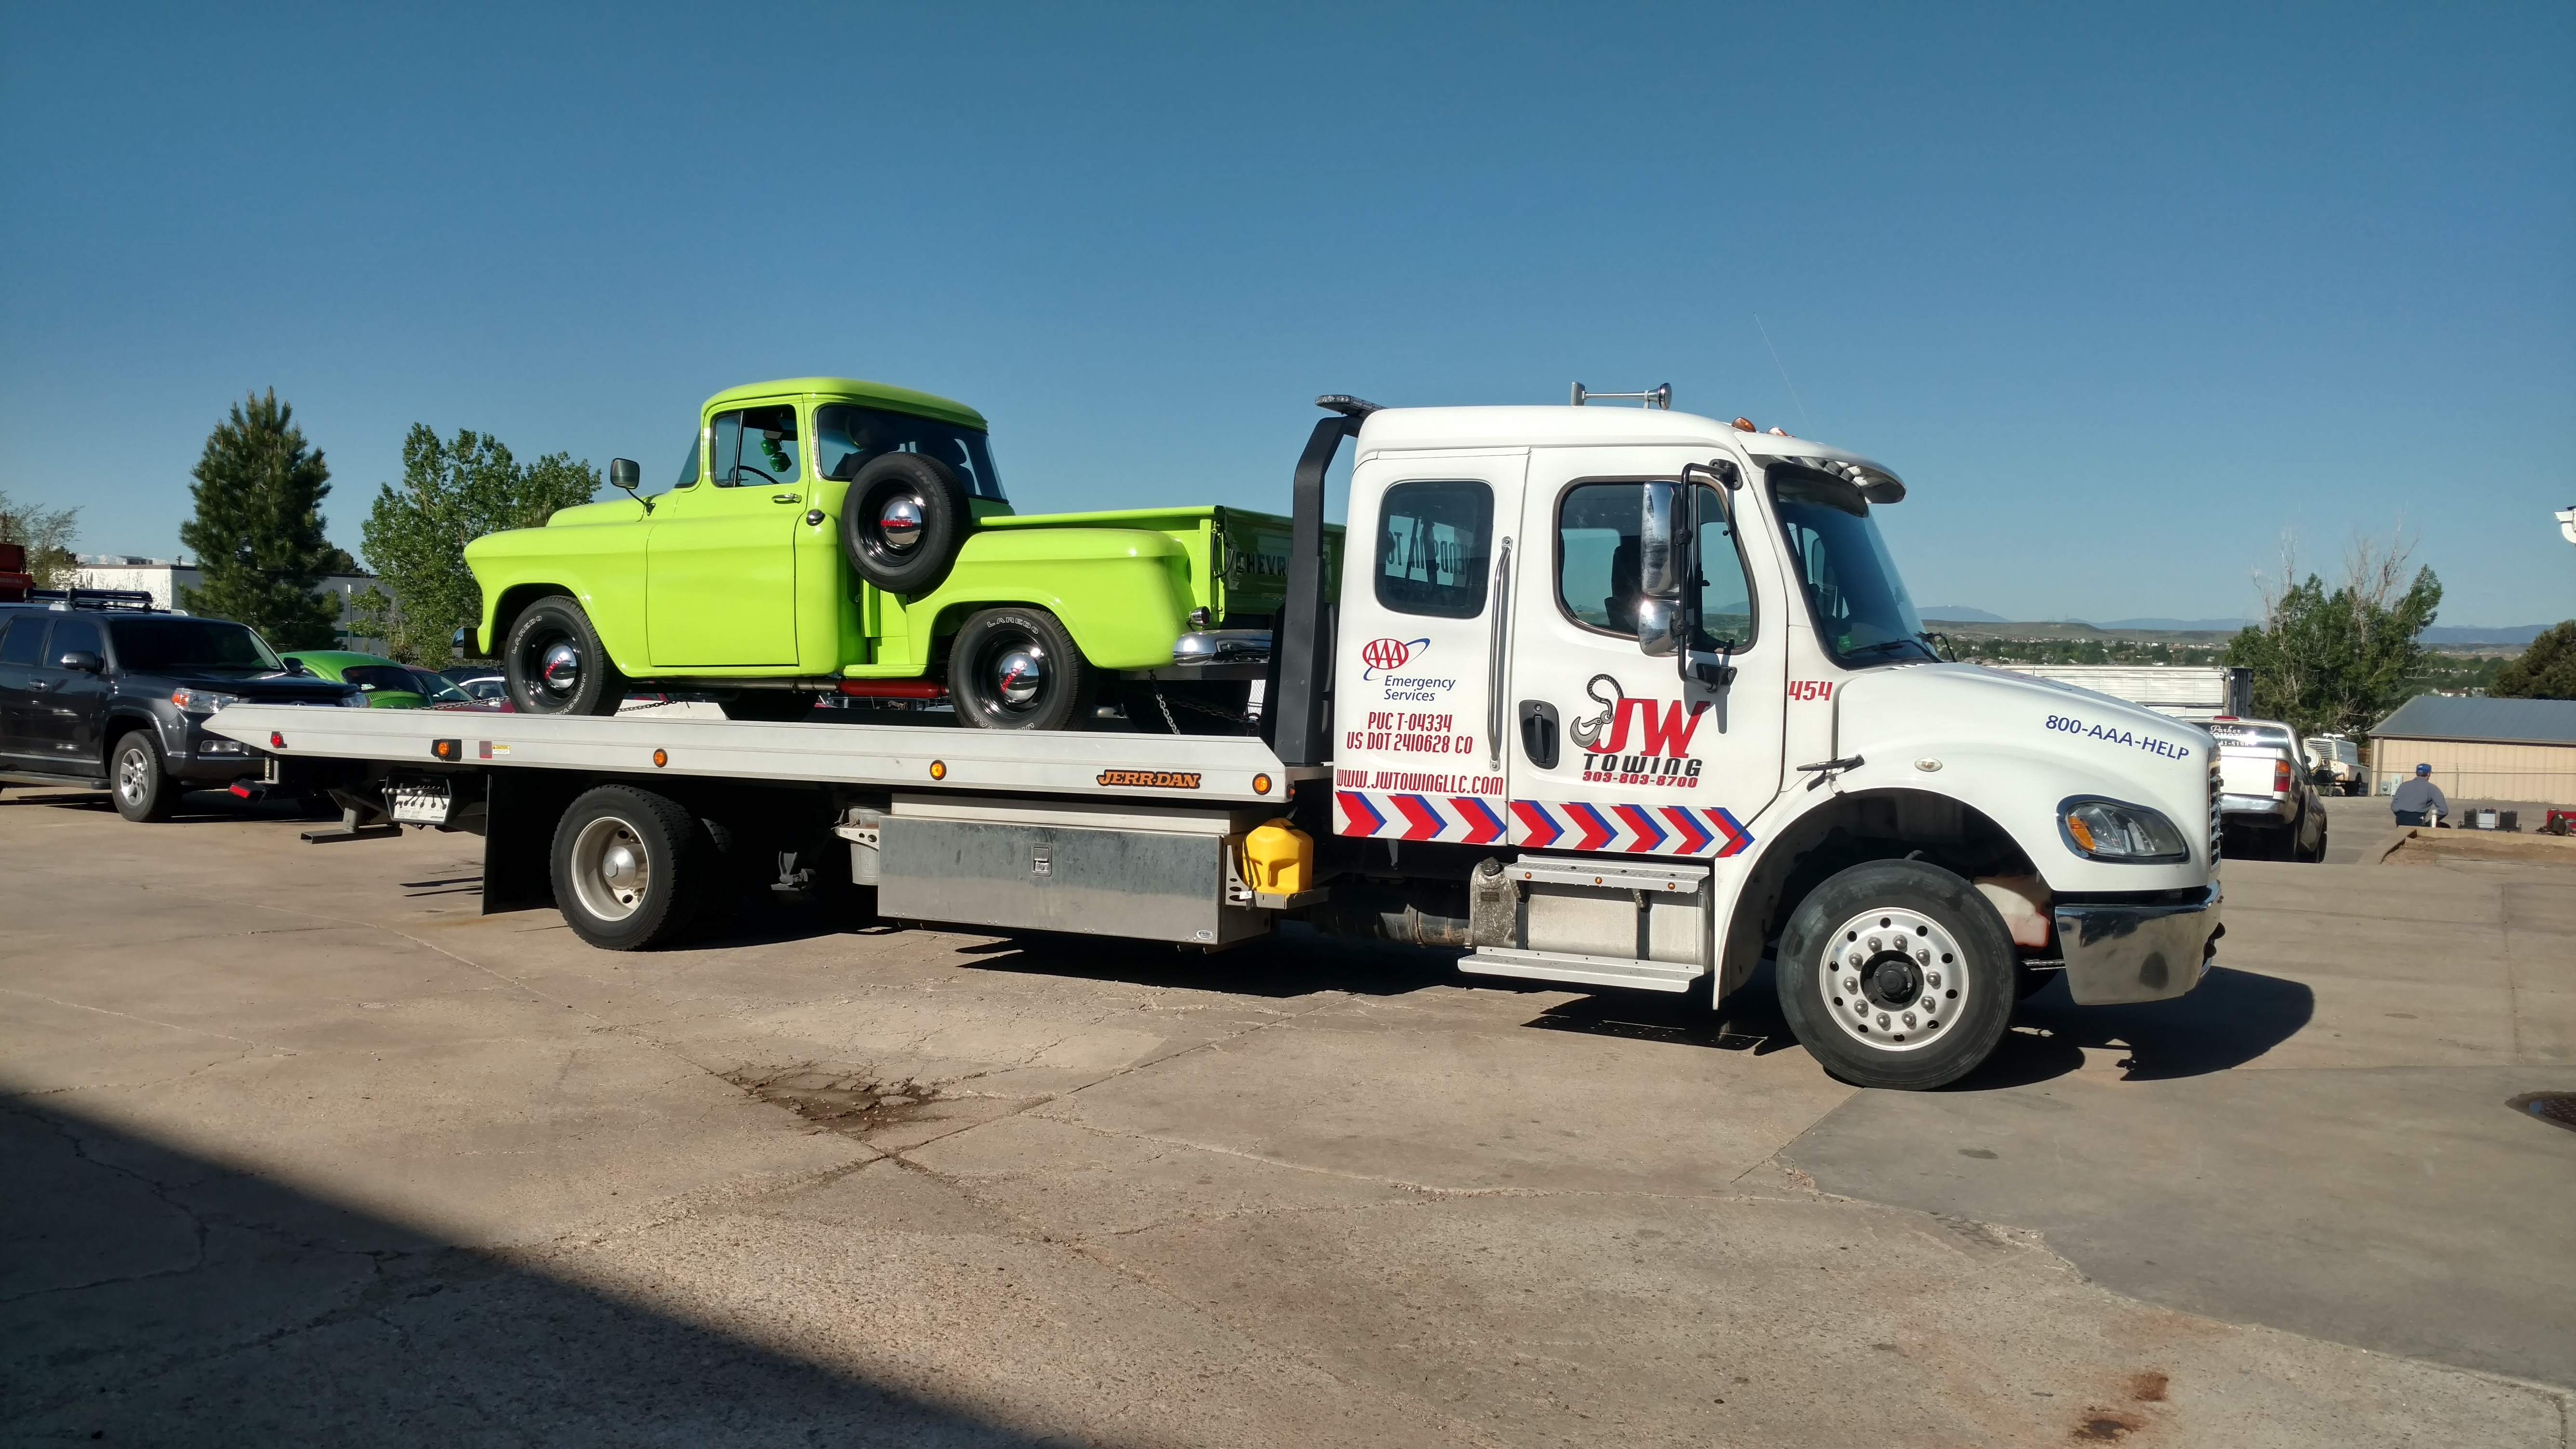 In which cases use the service tow truck